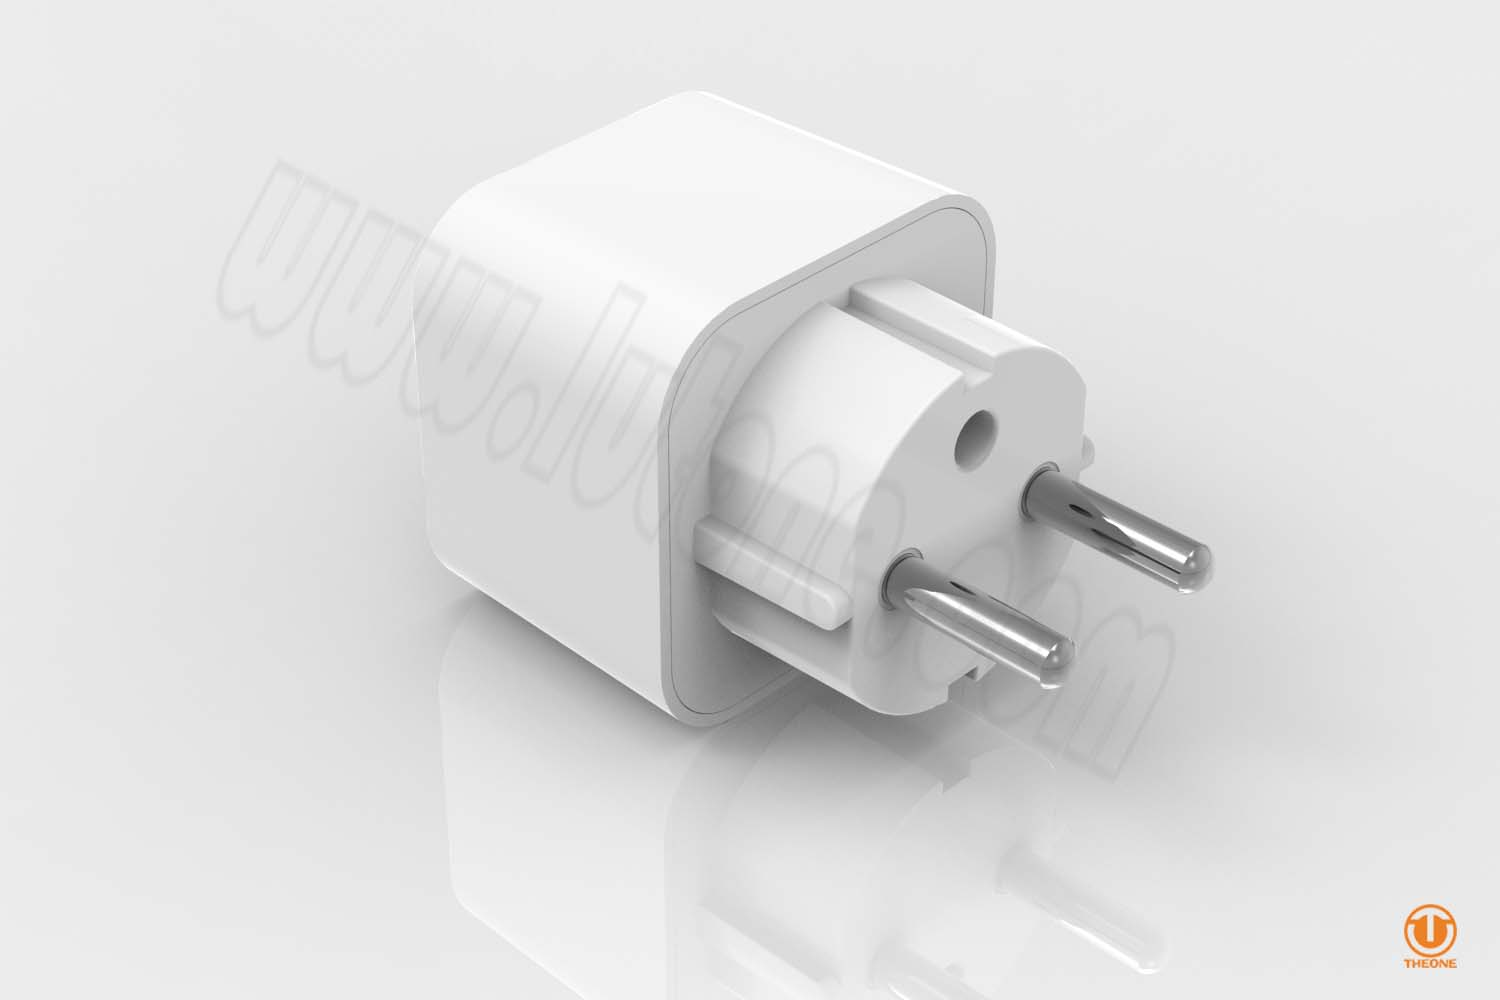 tc03b2-4 dual usb wall charger